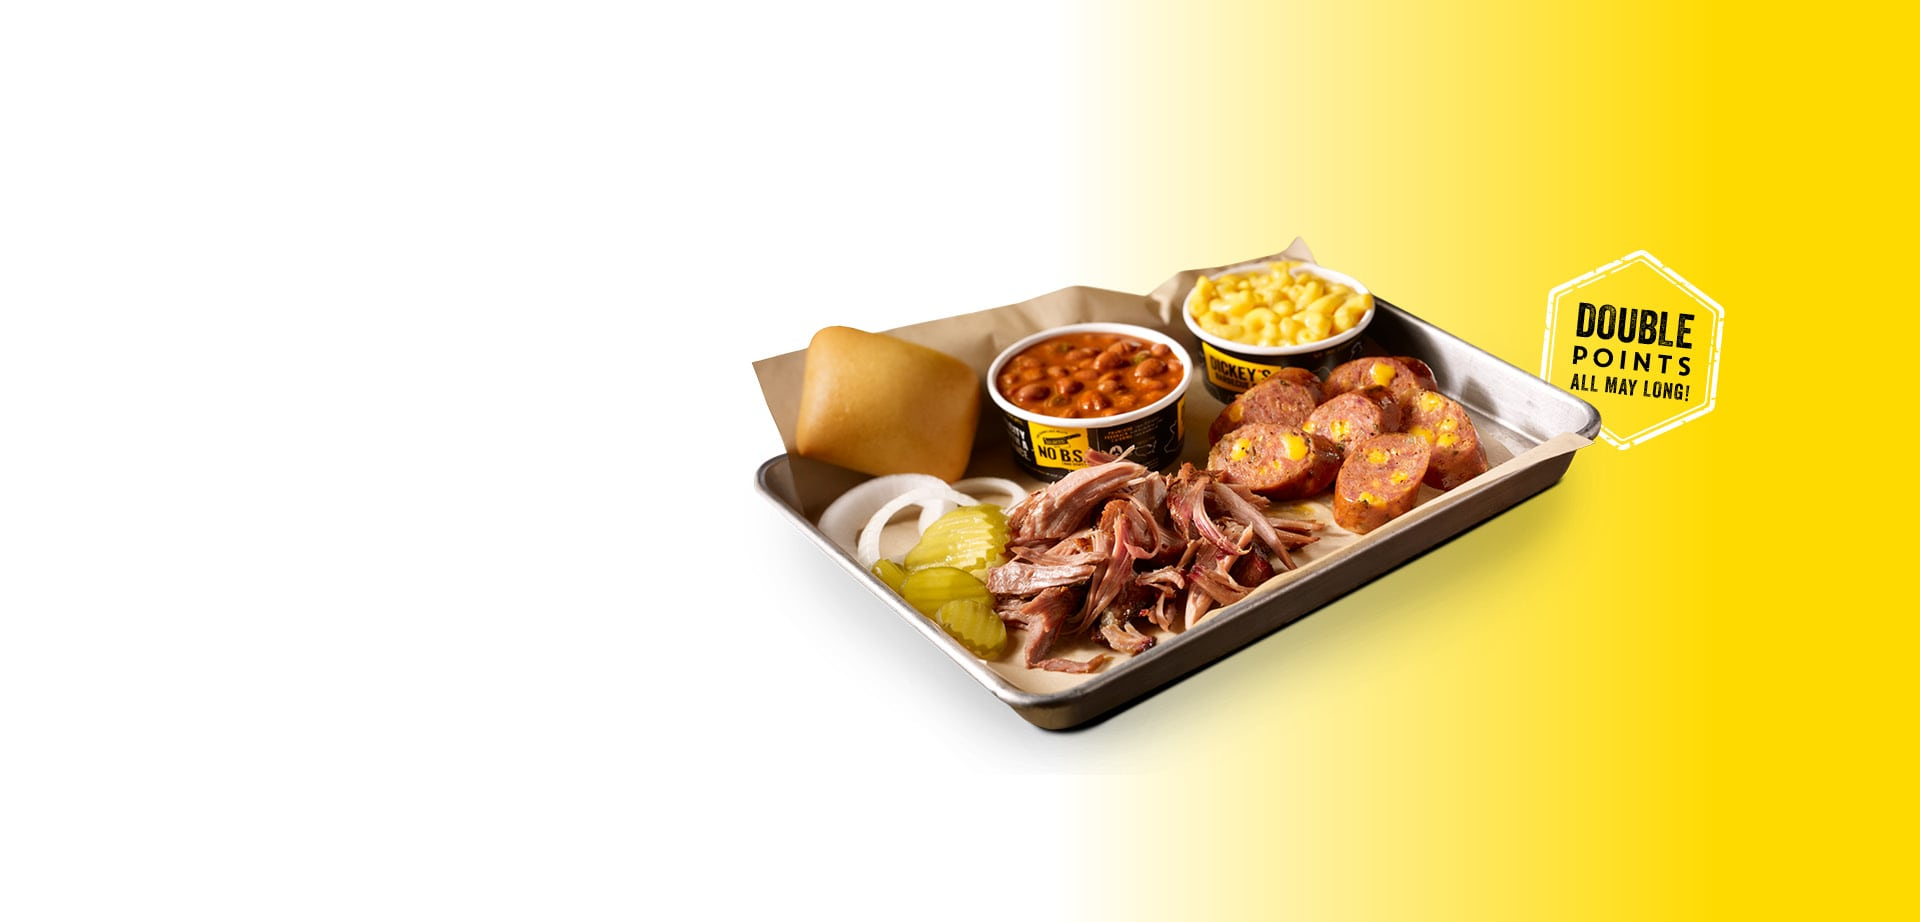 Happy National Barbecue Month